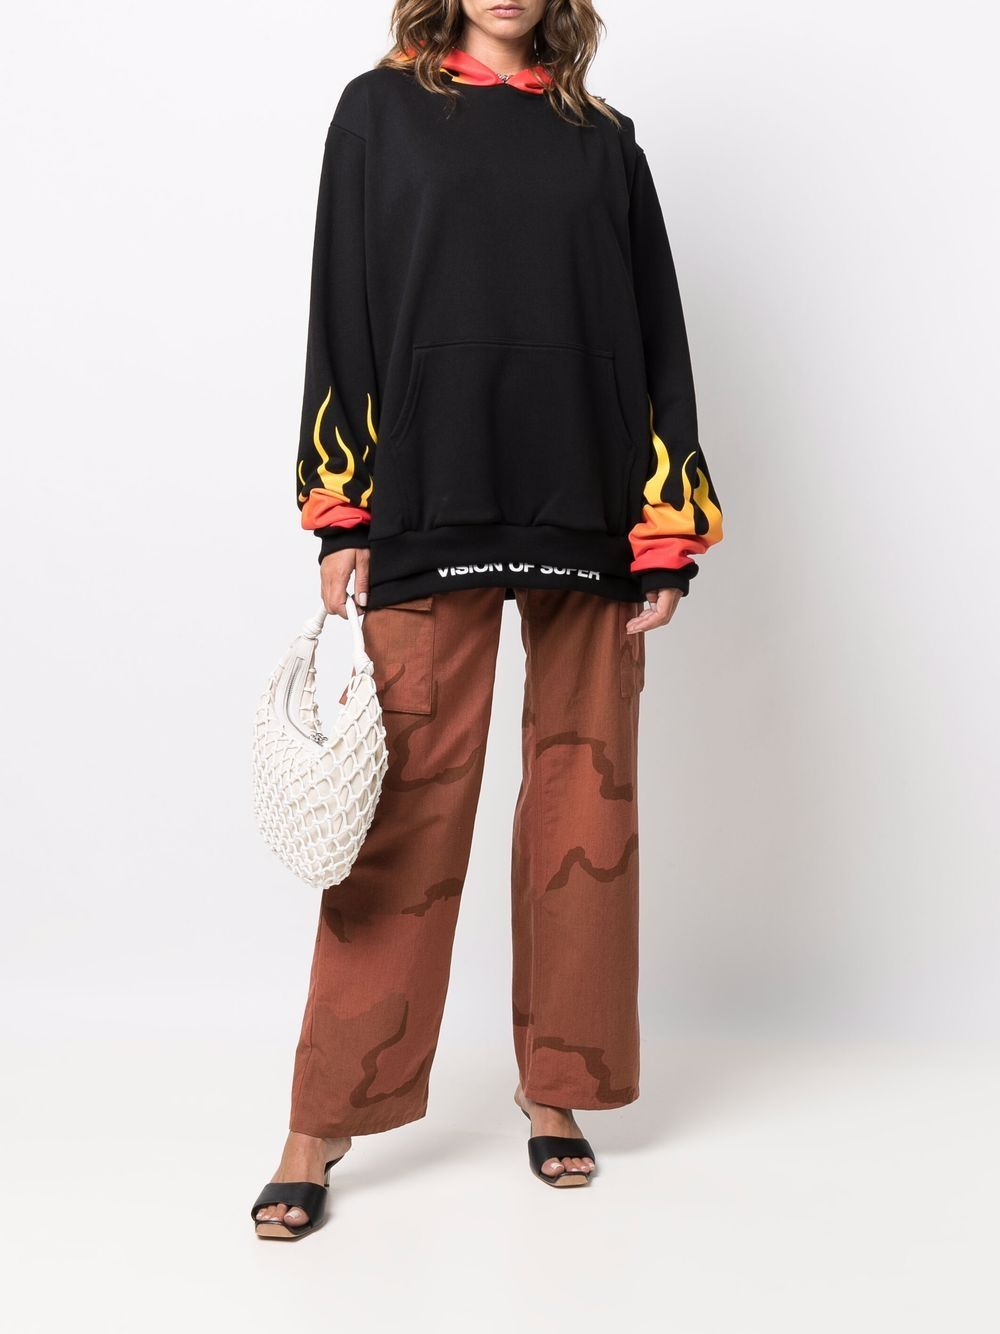 Picture of Vision Of Super | Flame Print Sweatshirt